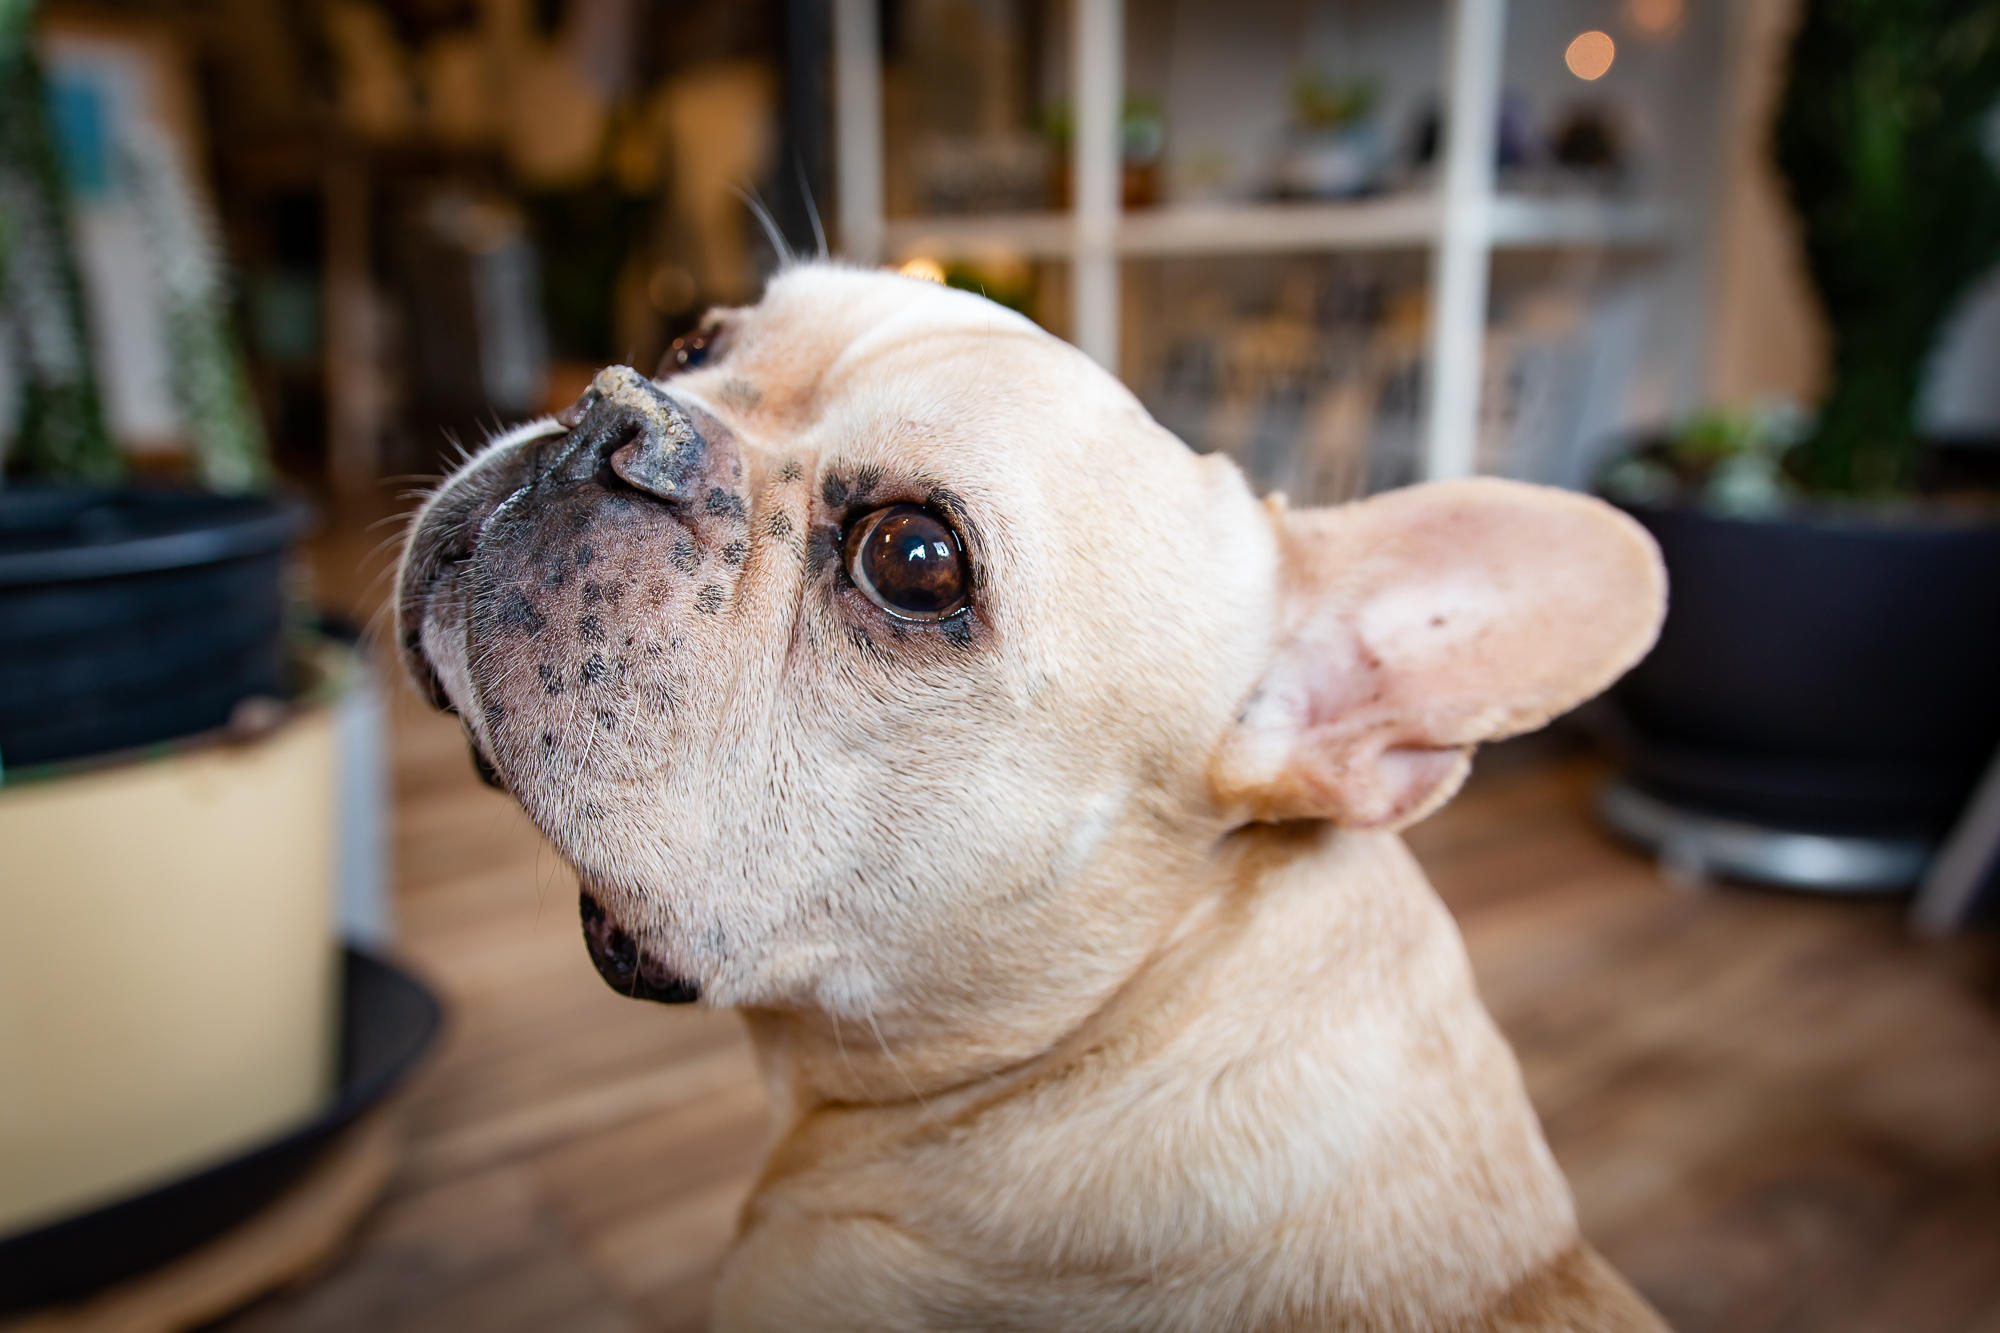 MEET THE SHOP PUPS! - Lemon...8-year-old French Bulldog x Boston TerrierHobbies include sweetly and relentlessly demanding petting and sun soaking at the door, which is cleverly orchestrated in order to receive the most attention from shop visitors.